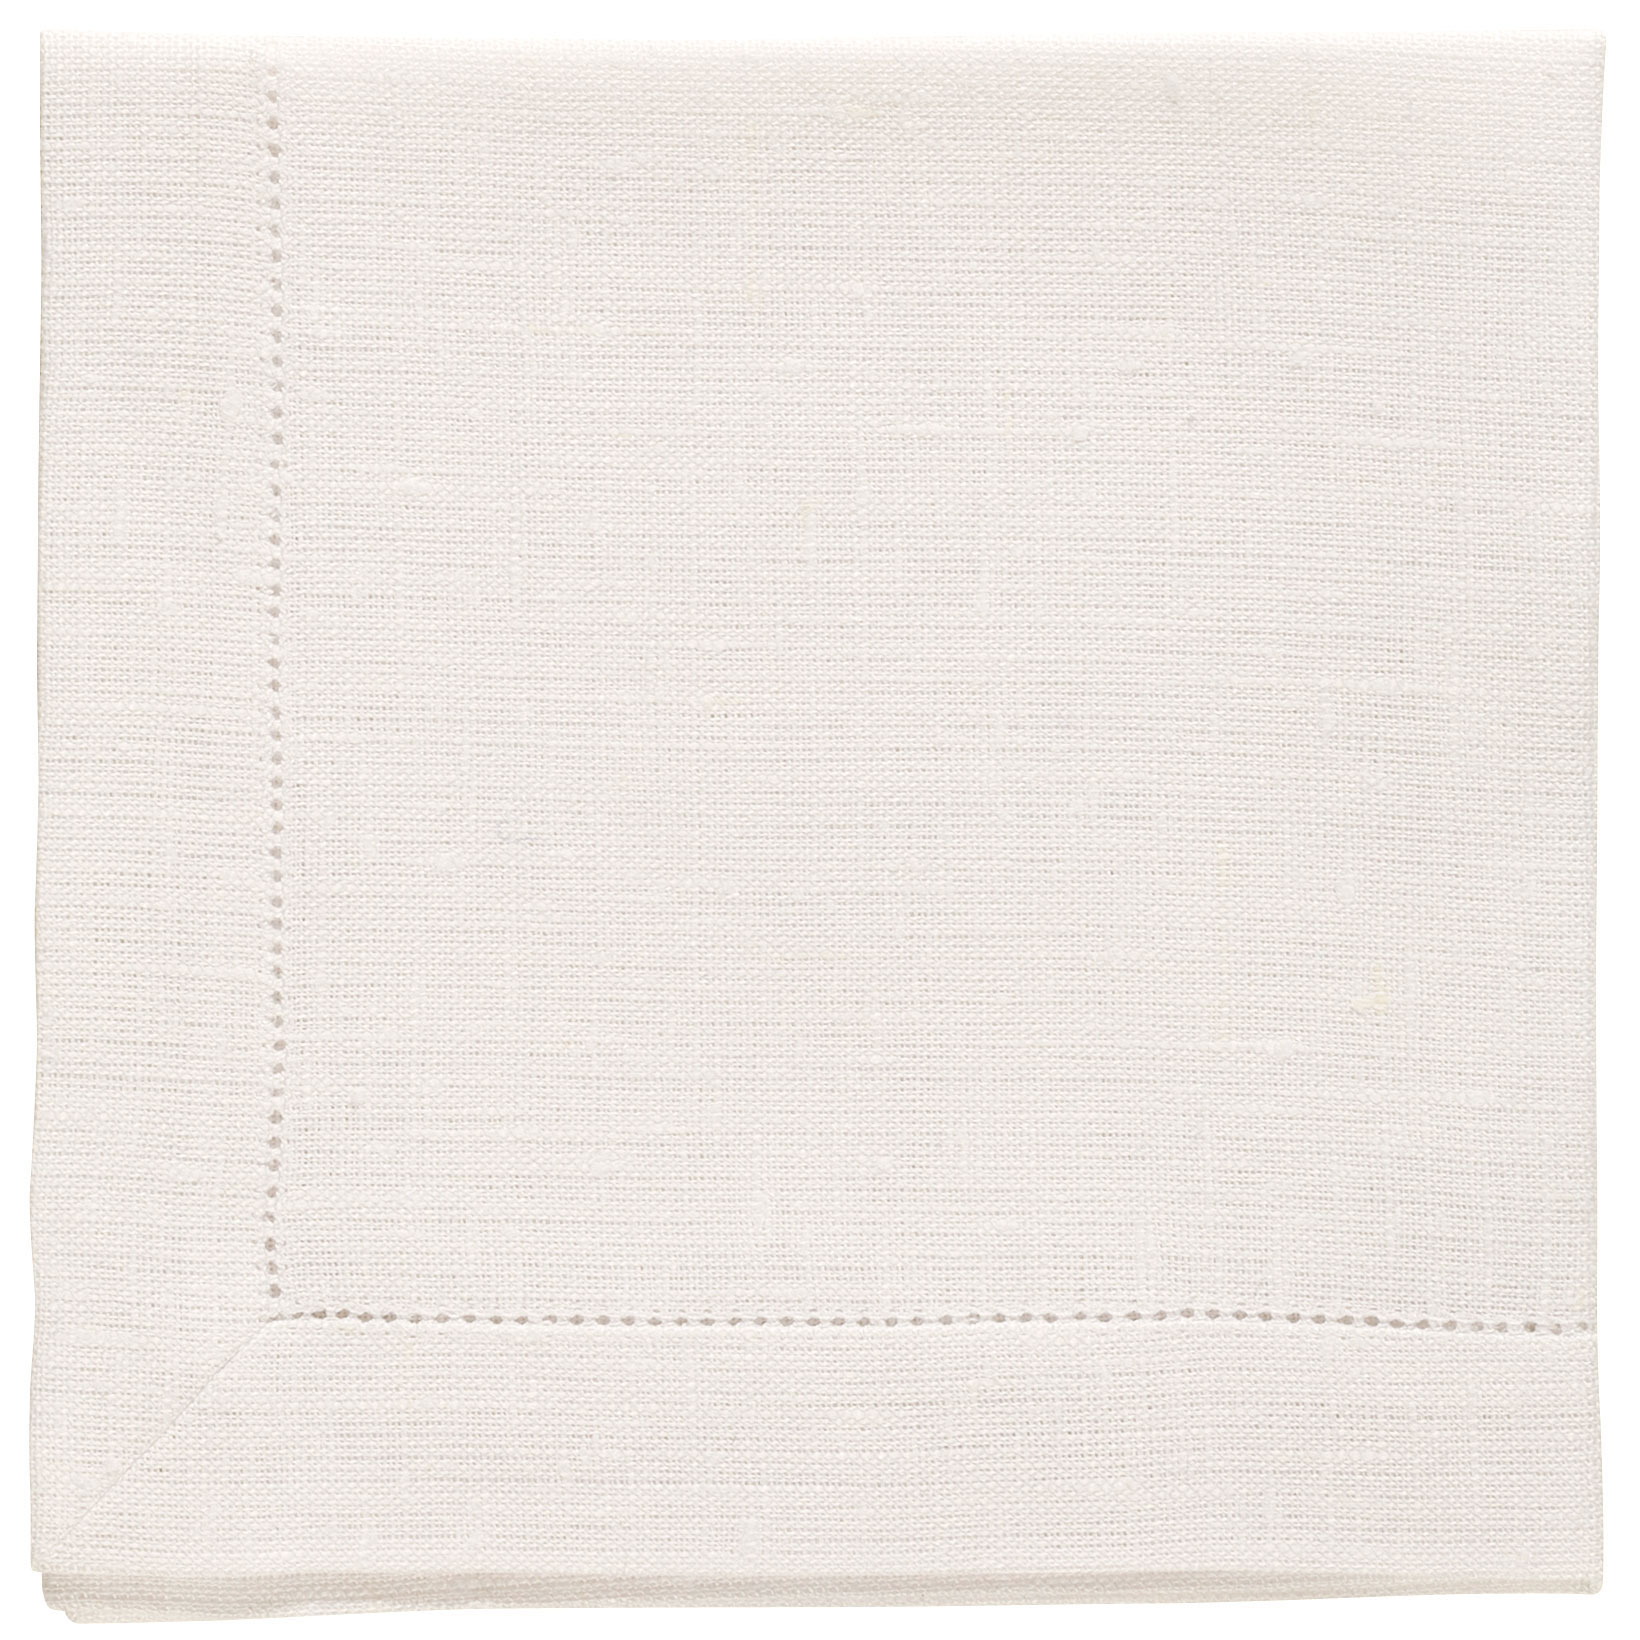 NAPKIN <br />natural white